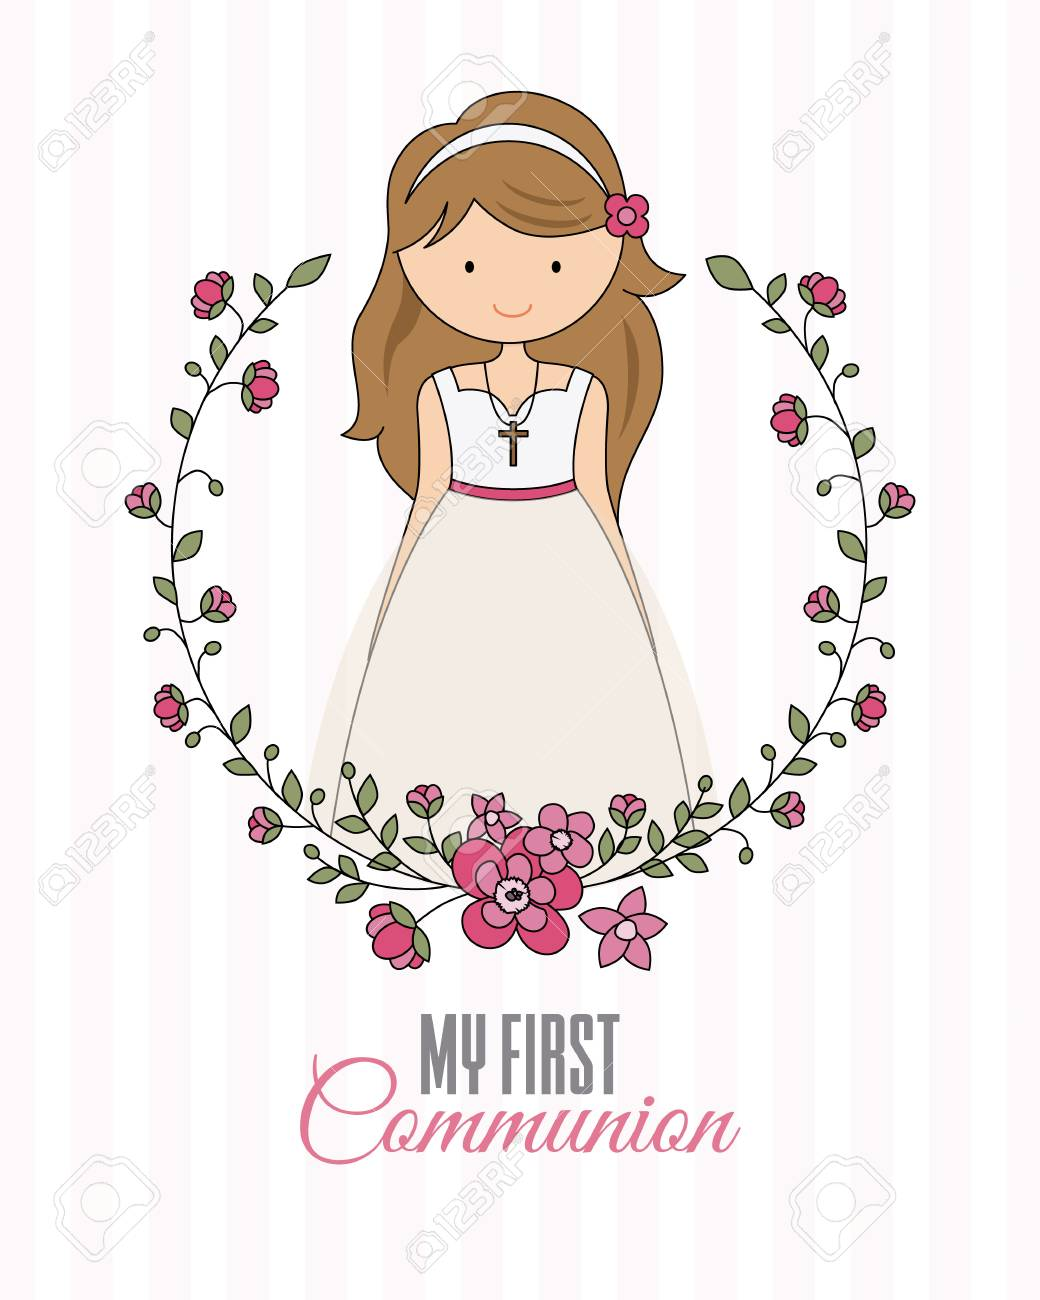 my first communion poster. beautiful girl with communion dress and flower frame - 95616249